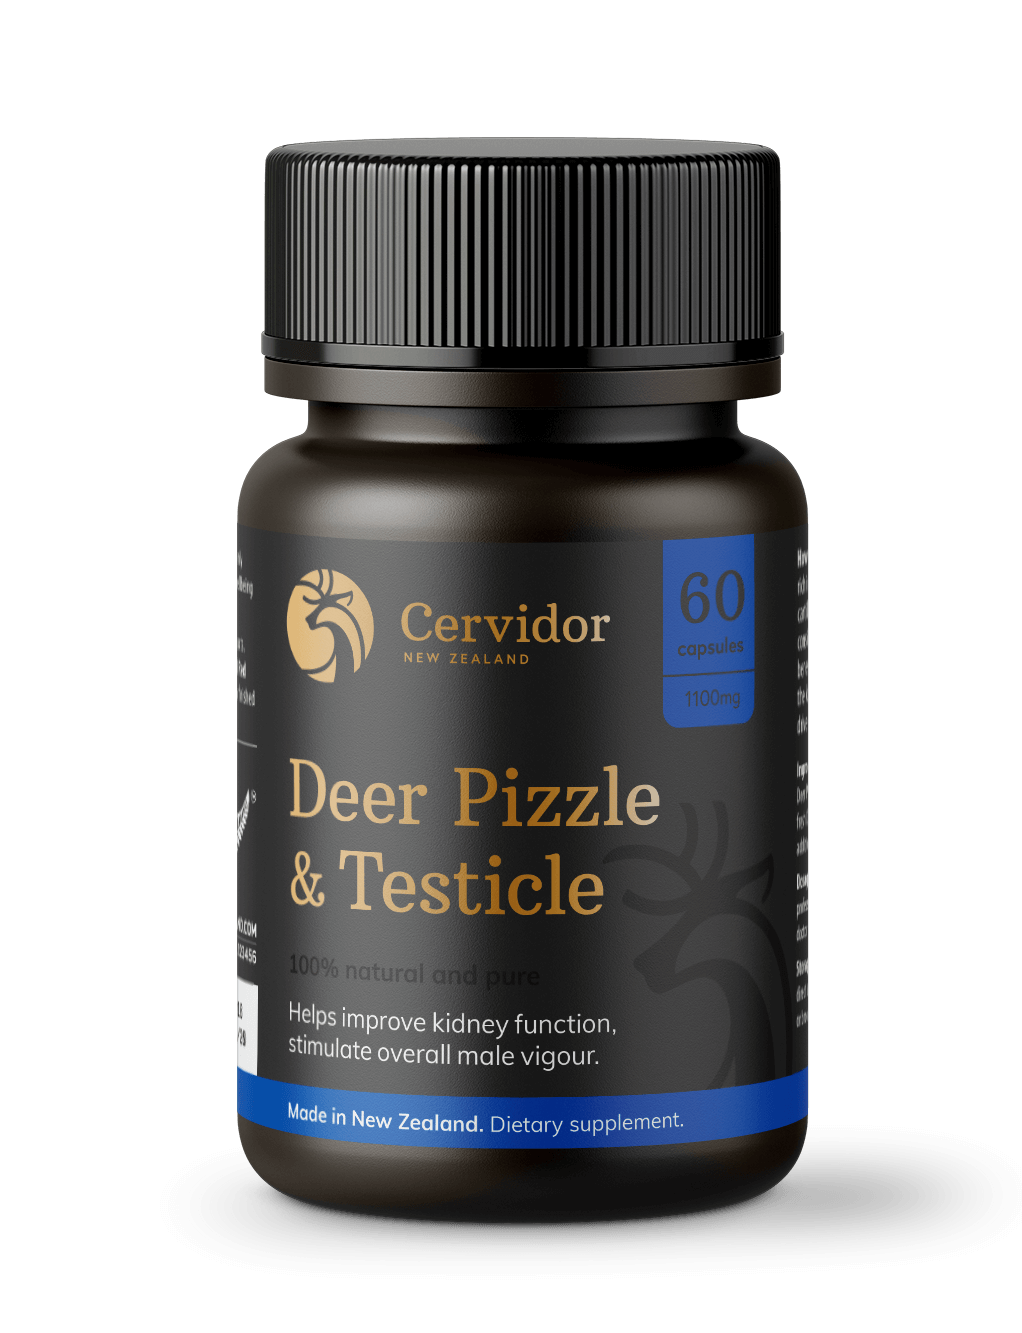 Deer Pizzle and Testicle Capsules